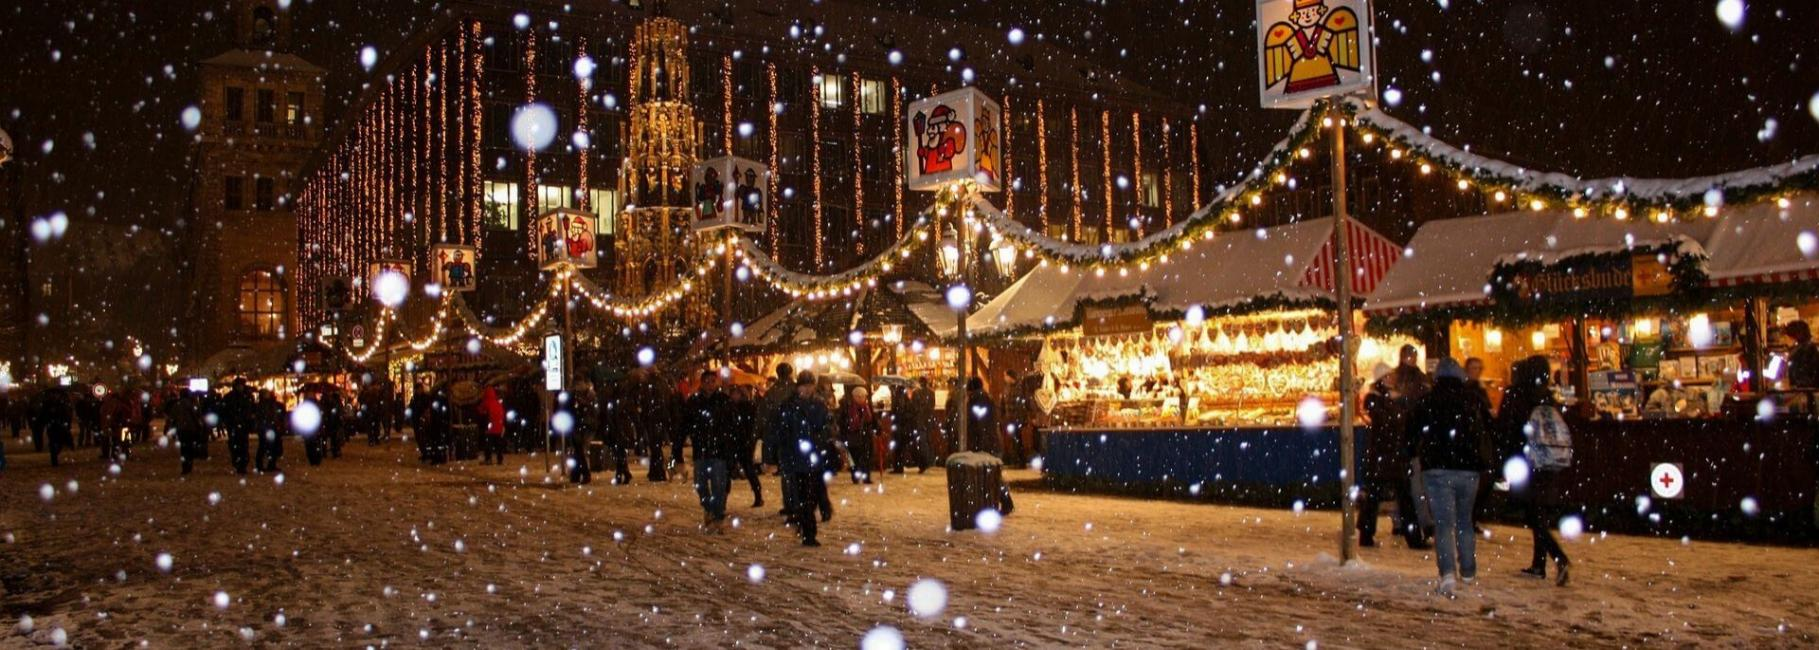 christmas markets plp header slk